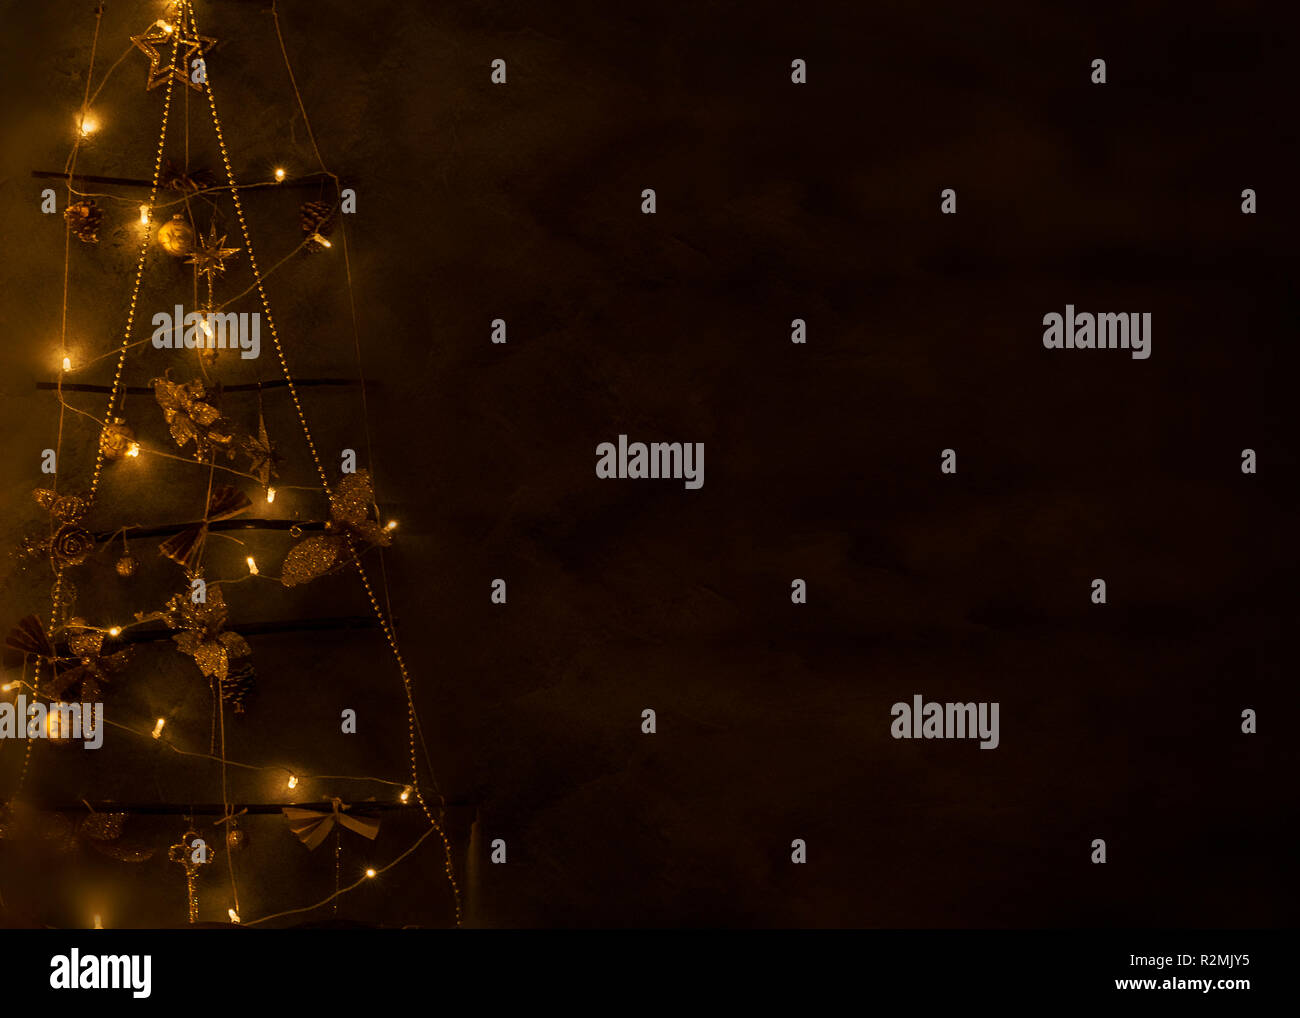 Christmas symbolic tree of bright lights, decorations, toys blank for greeting cards, place for text, in brown tones - Stock Image